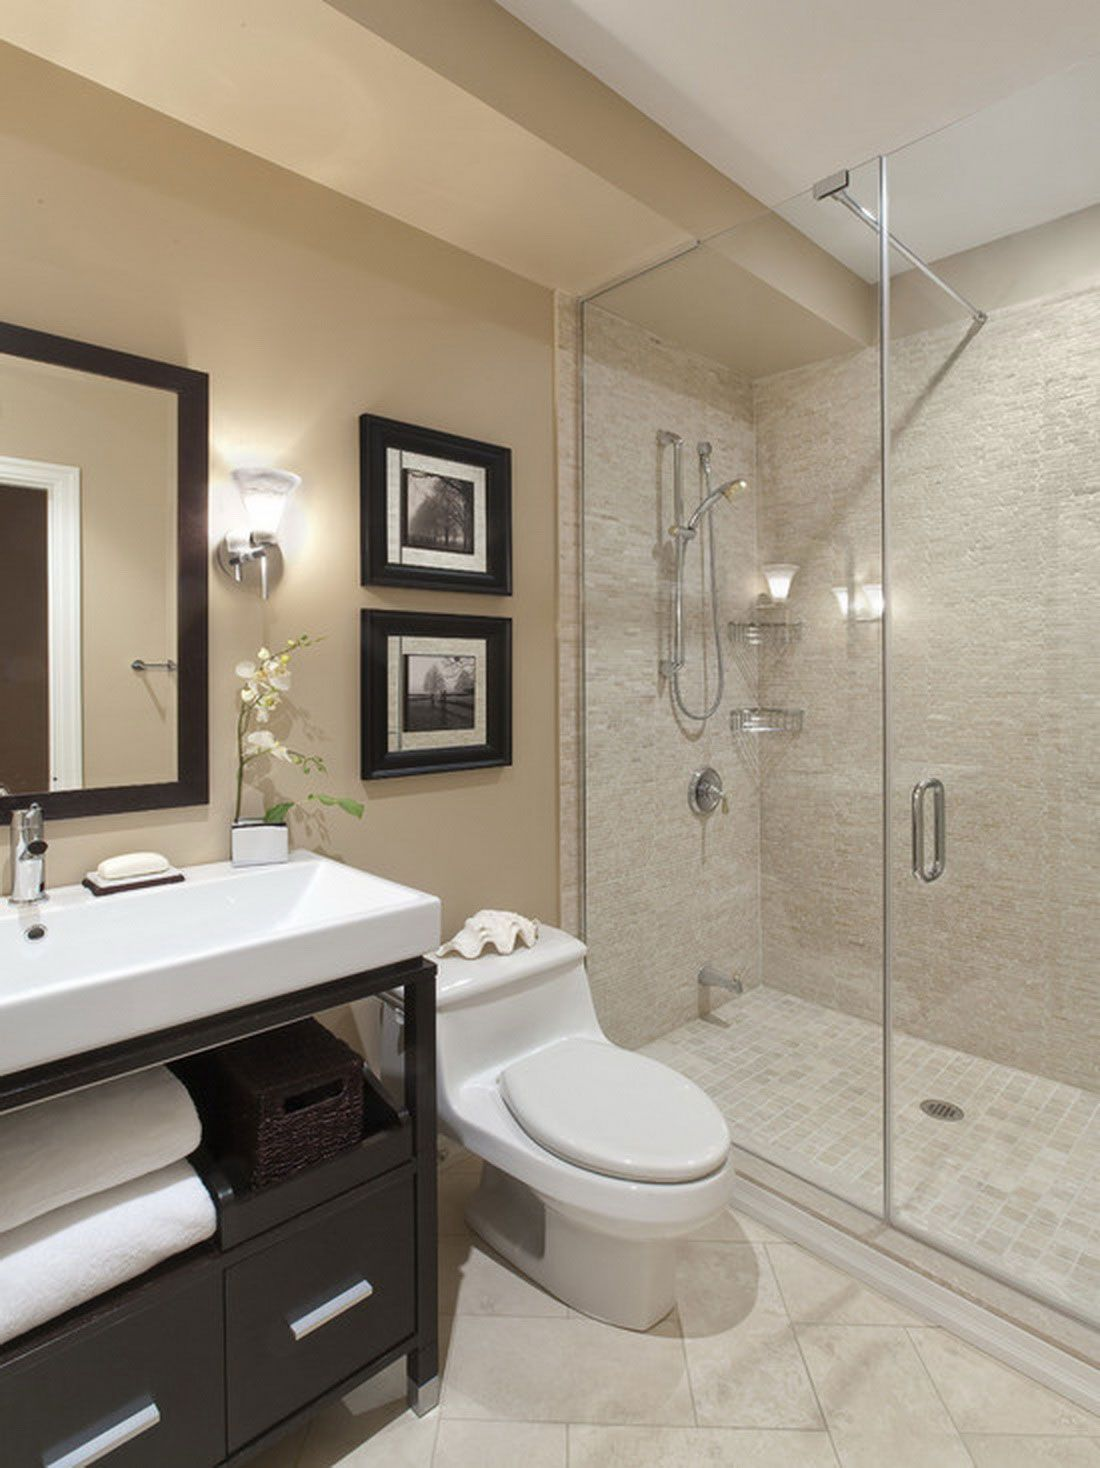 15 Extraordinary Transitional Bathroom Designs For Any Home Bathroom Designs Small Bathroom